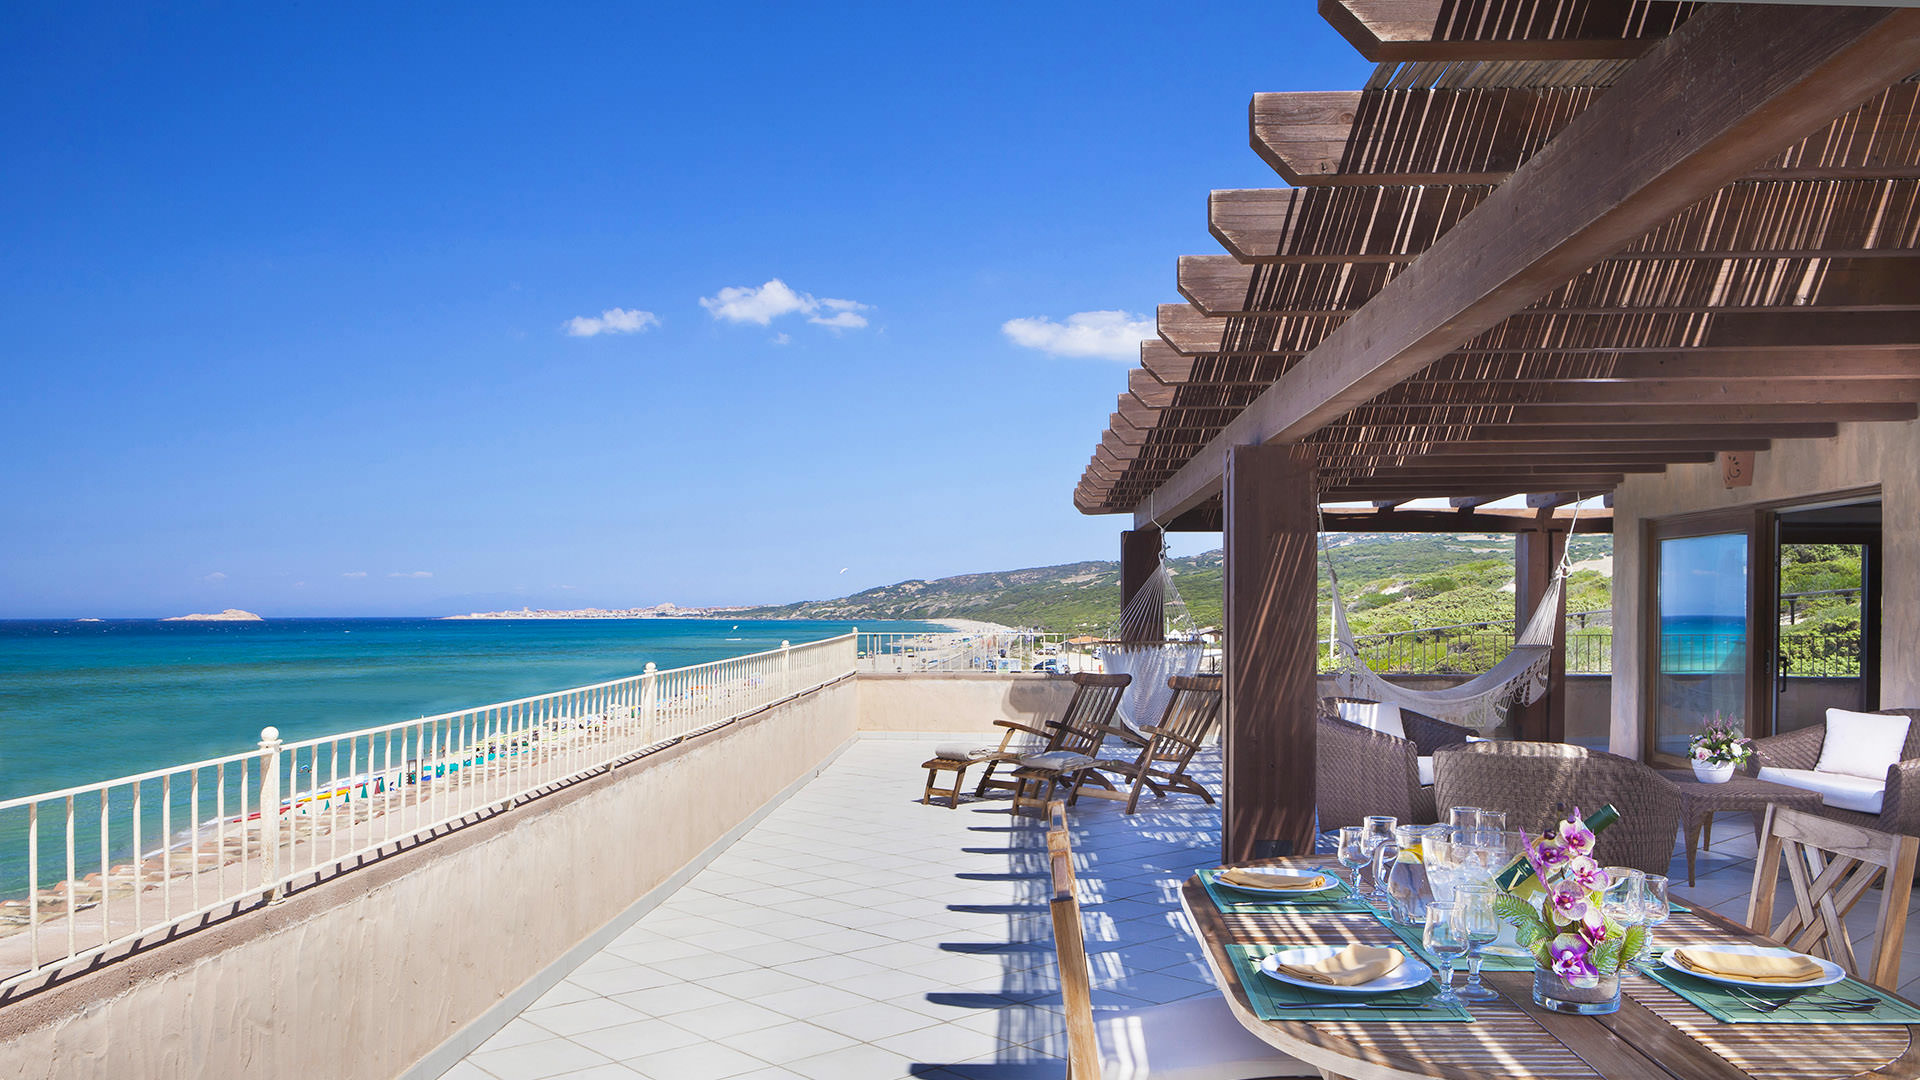 Resort & SPA Le Dune a Badesi - Resort 4 stelle in Sardegna Delphina